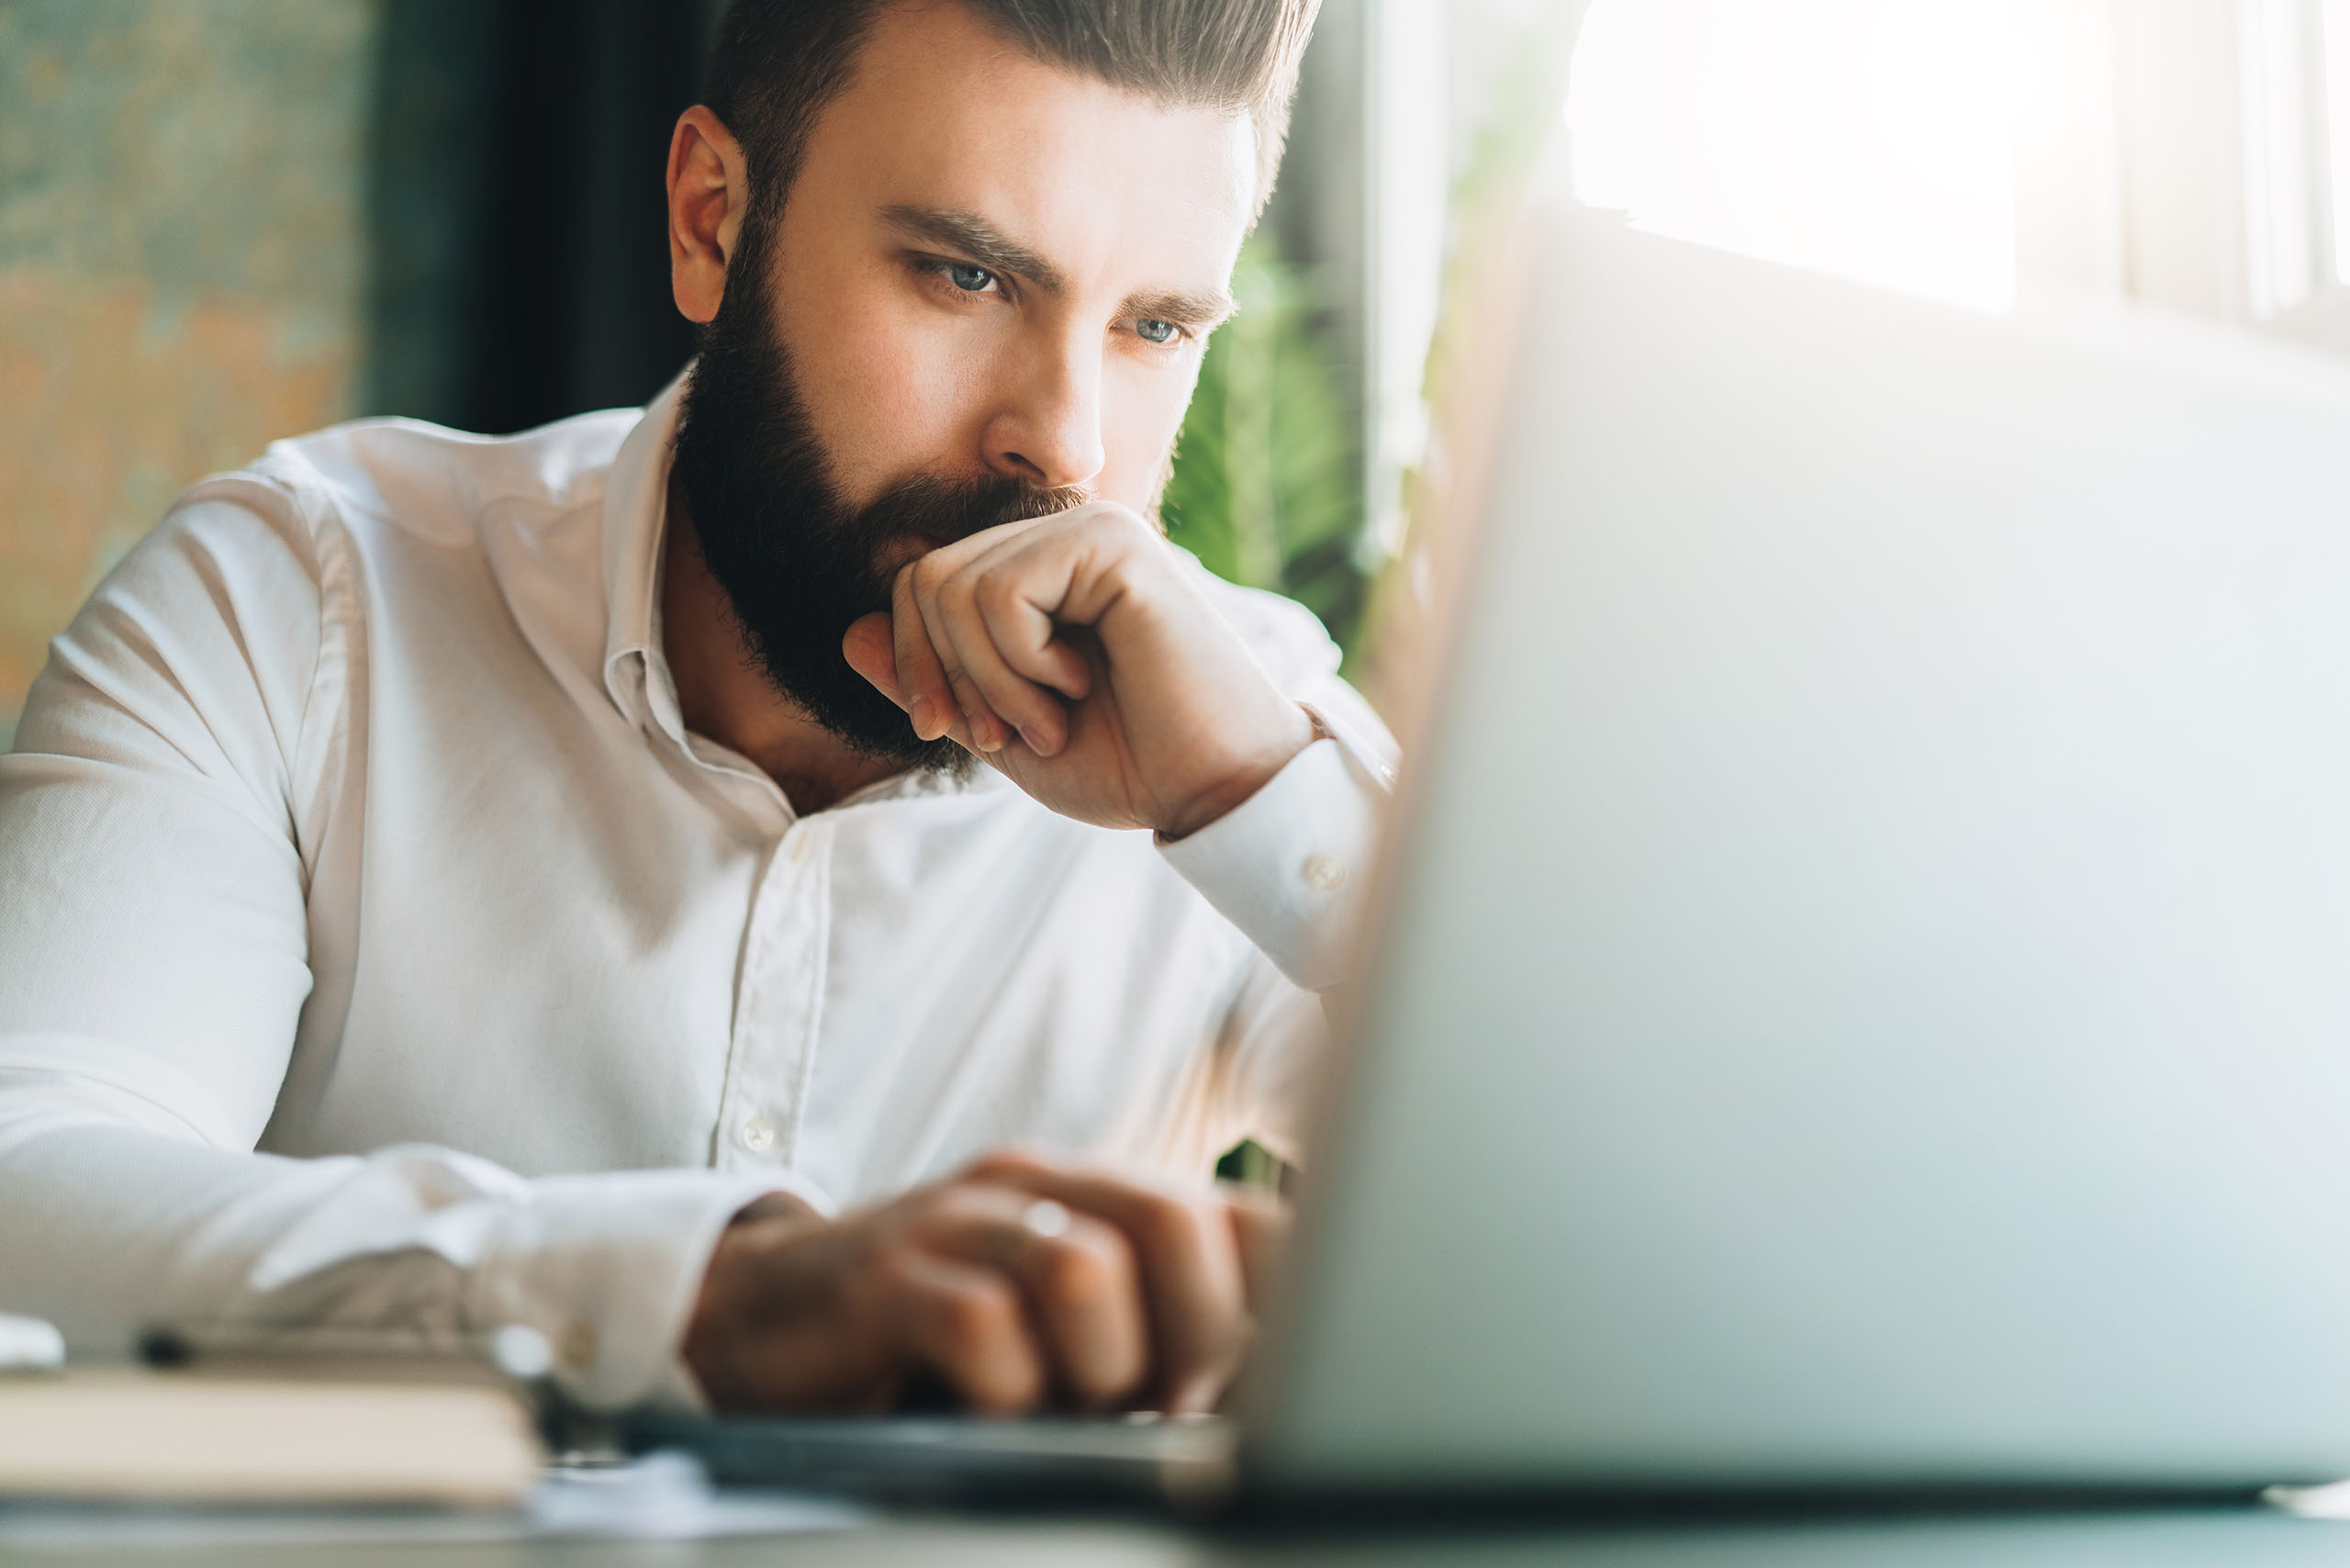 Man looks at laptop concentrating